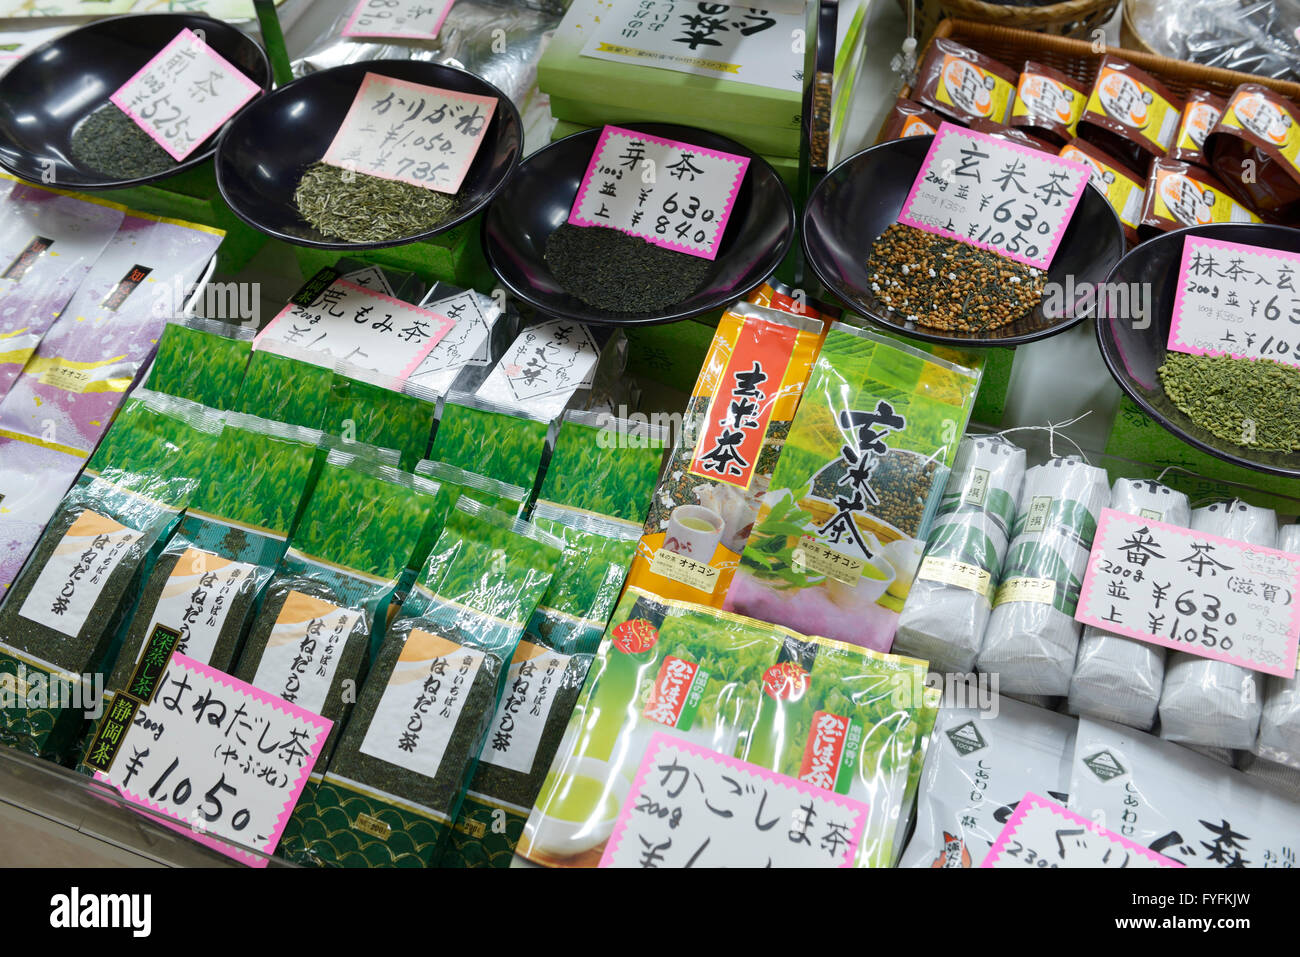 Japanese teas, Genmaicha, at a store,Tokyo, Japan - Stock Image